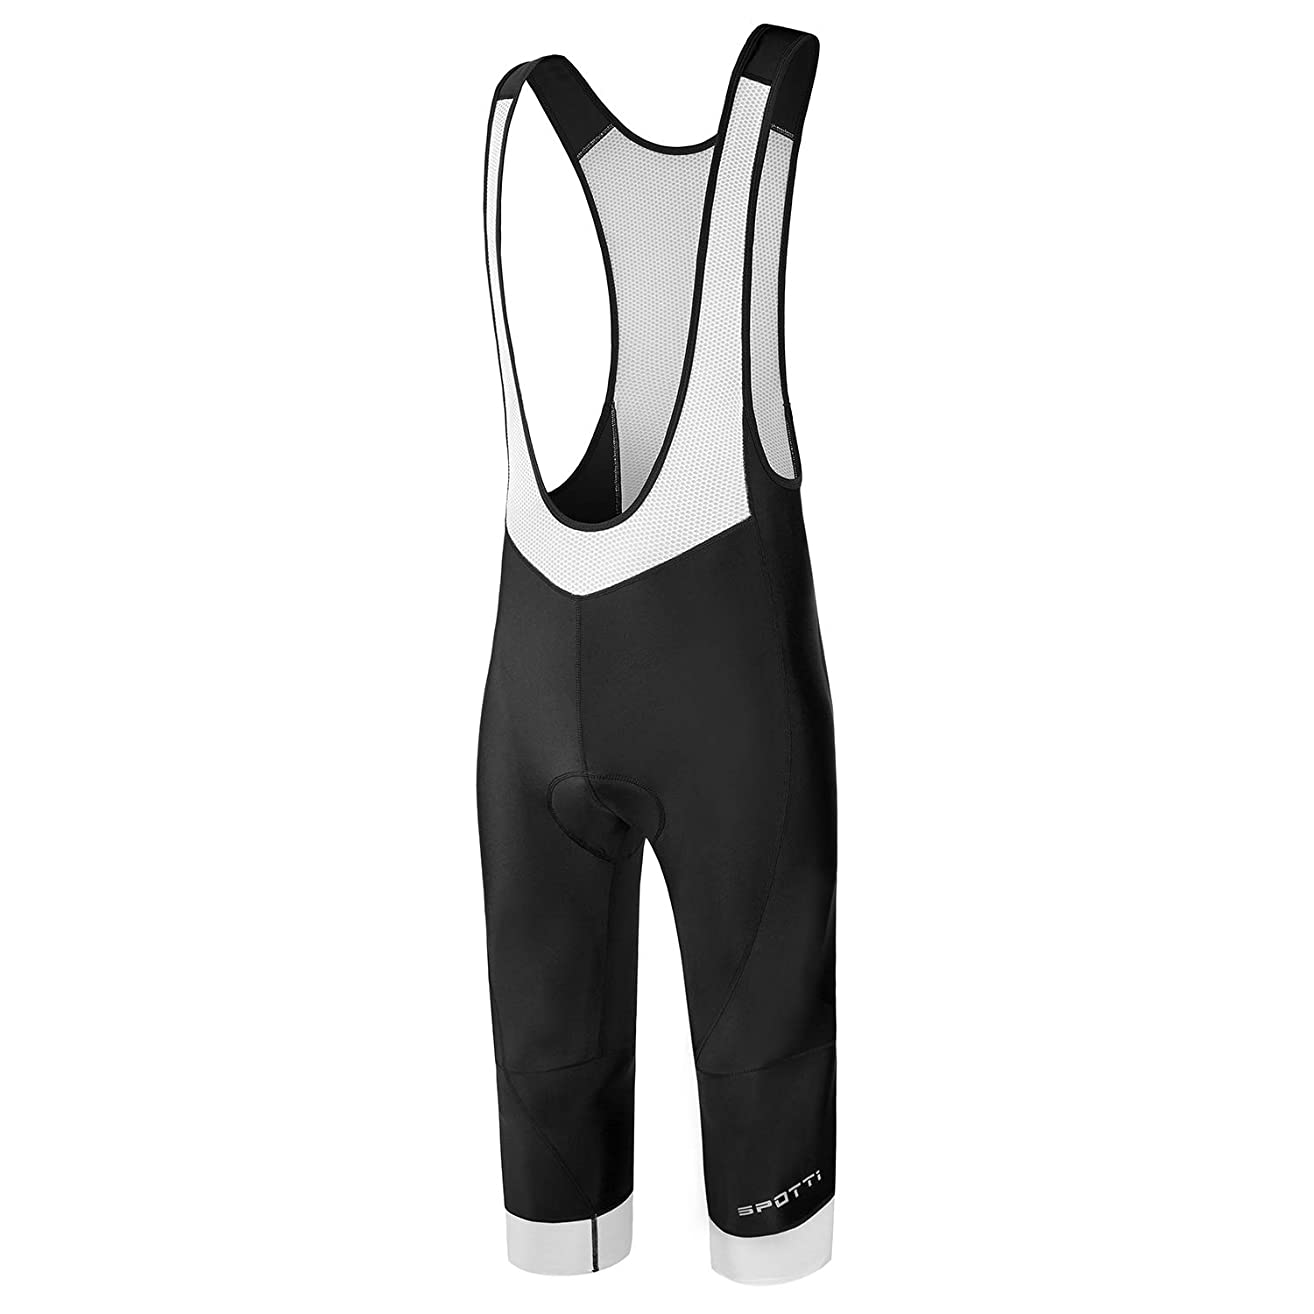 Spotti Men's Cycling Bib Shorts, 3D Padded Bike Bib Tights Breathable Bicycle Pants - Comfortable & Better Fit